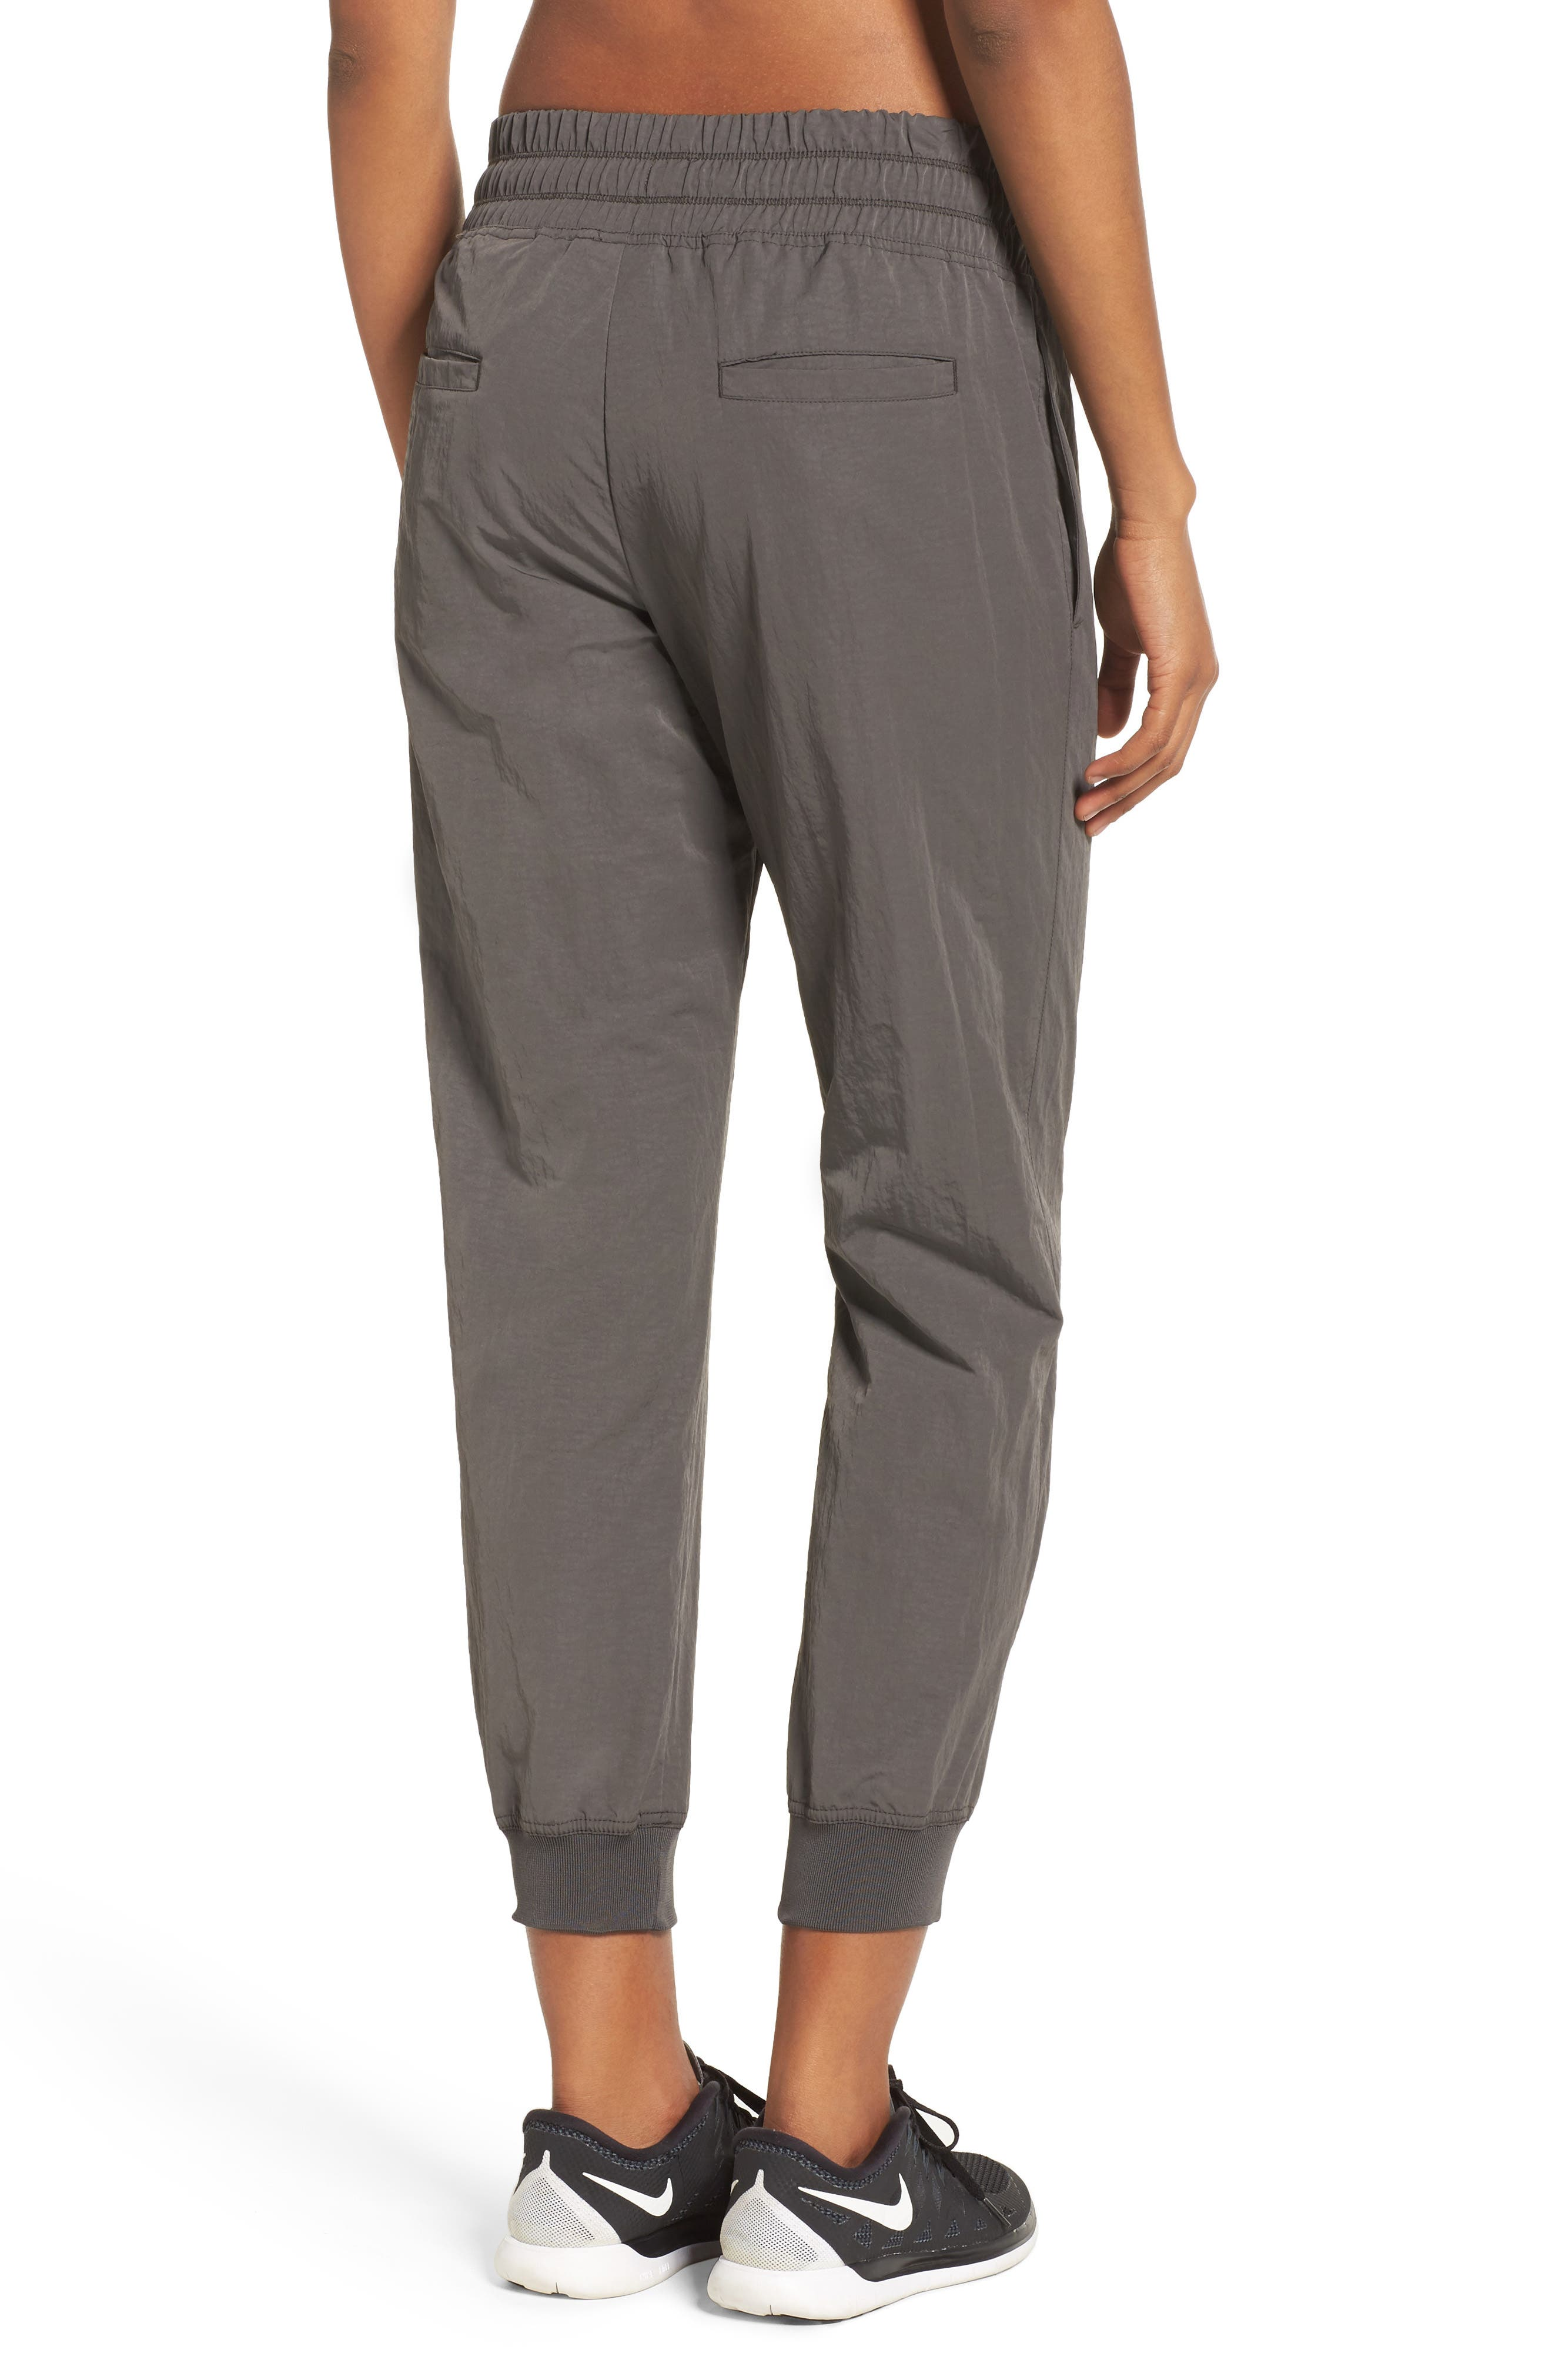 Air Drawstring Sweatpants,                             Alternate thumbnail 2, color,                             Midnight Fog